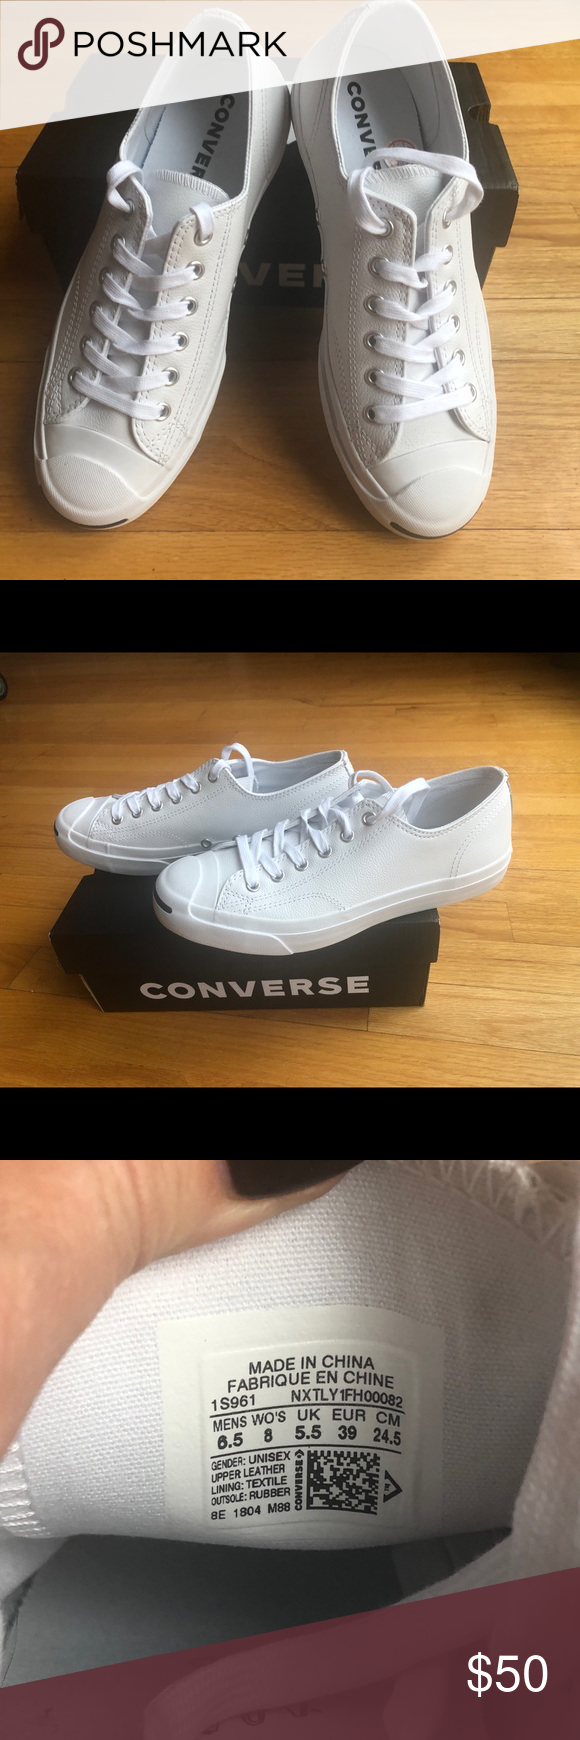 dedefd5fb127 Jack Purcell Leather Converse. New in box! Brand new